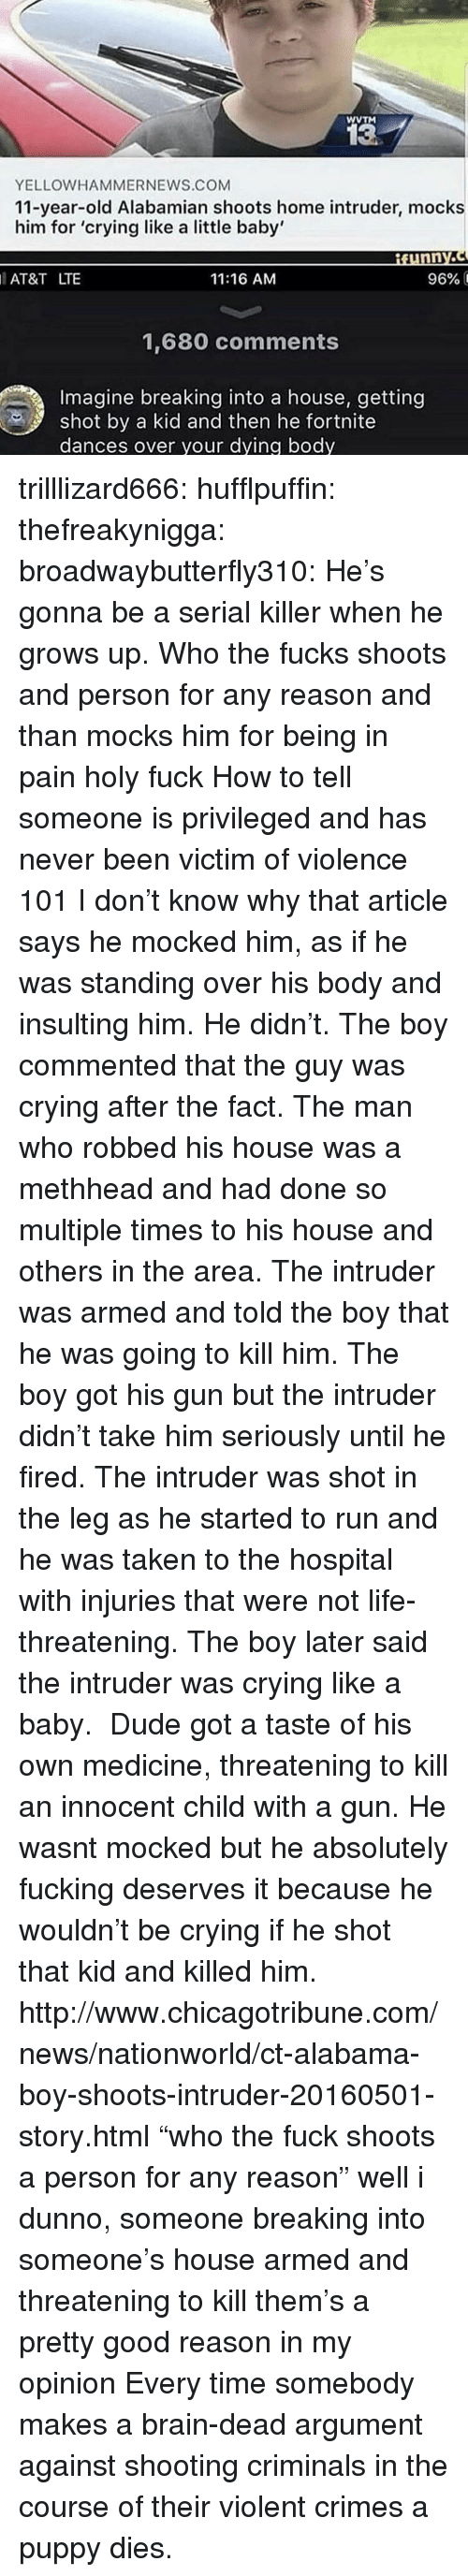 """like a baby: WVTM  13  YELLOWHAMMERNEWS.COM  11-year-old Alabamian shoots home intruder, mocks  him for 'crying like a little baby'  AT&T LTE  11:16 AM  96% і  1,680 comments  Imagine breaking into a house, getting  shot by a kid and then he fortnite  dances over your dying body trilllizard666:  hufflpuffin:  thefreakynigga:  broadwaybutterfly310: He's gonna be a serial killer when he grows up. Who the fucks shoots and person for any reason and than mocks him for being in pain holy fuck How to tell someone is privileged and has never been victim of violence 101  I don't know why that article says he mocked him, as if he was standing over his body and insulting him. He didn't. The boy commented that the guy was crying after the fact. The man who robbed his house was a methheadand had done so multiple times to his house and others in the area. The intruder was armed and told the boy that he was going to kill him. The boy got his gun but the intruder didn't take him seriously until he fired. The intruder was shot in the leg as he started to run and he was taken to the hospital with injuries that were not life-threatening. The boy later said the intruder was crying like a baby. Dude got a taste of his own medicine, threatening to kill an innocent child with a gun. He wasnt mocked but he absolutely fucking deserves it because he wouldn't be crying if he shot that kid and killed him. http://www.chicagotribune.com/news/nationworld/ct-alabama-boy-shoots-intruder-20160501-story.html  """"who the fuck shoots a person for any reason"""" well i dunno, someone breaking into someone's house armed and threatening to kill them's a pretty good reason in my opinion   Every time somebody makes a brain-dead argument against shooting criminals in the course of their violent crimes a puppy dies."""